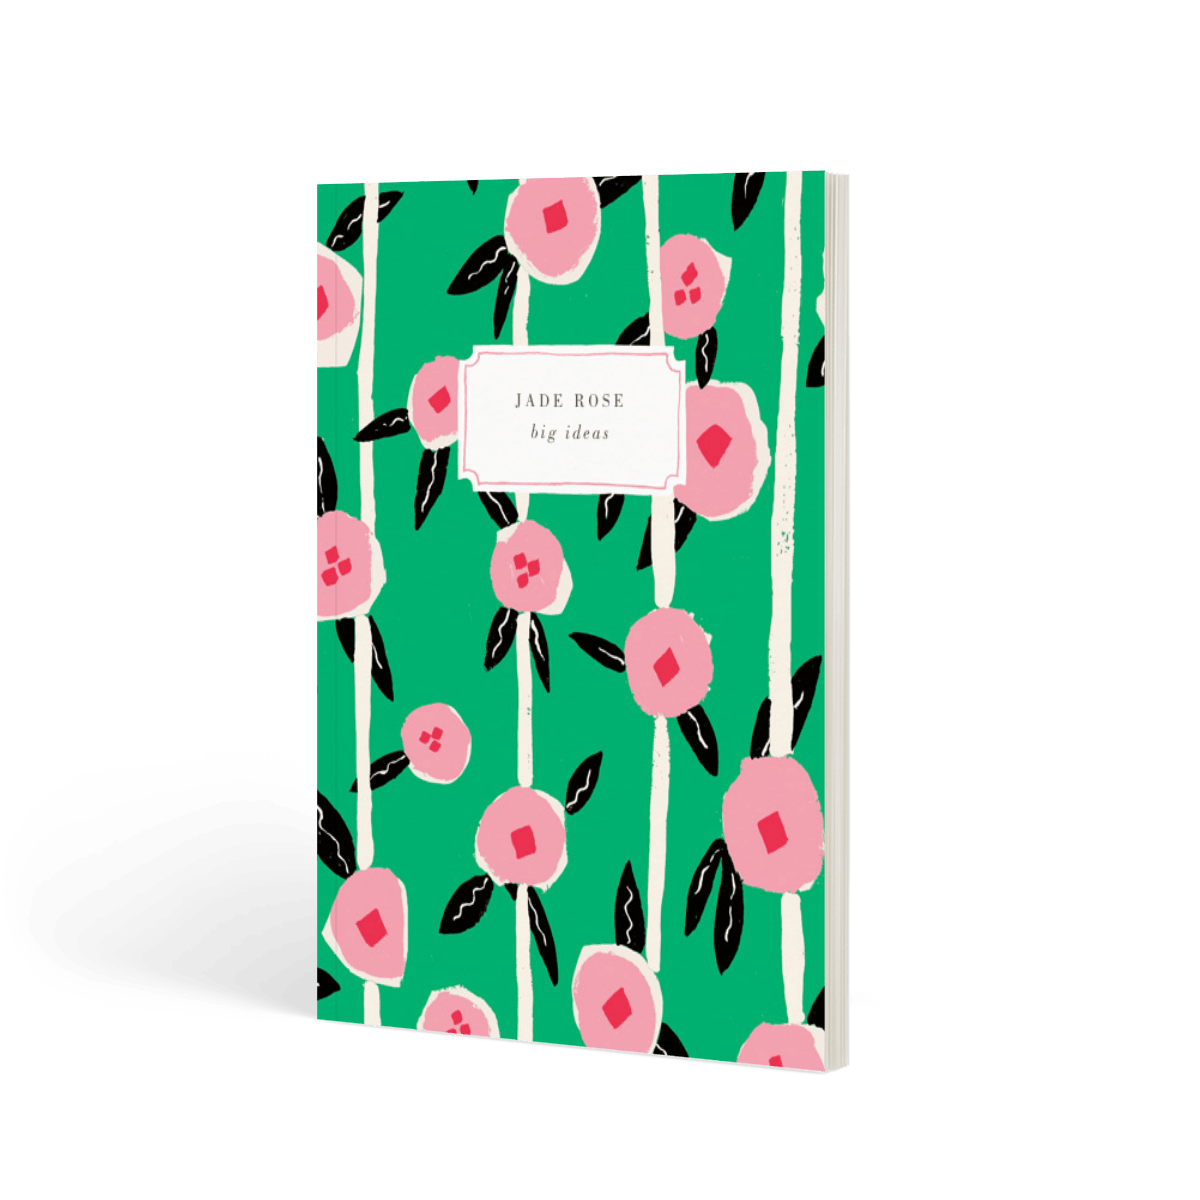 Https%3a%2f%2fwww.papier.com%2fproduct image%2f28137%2f6%2fflowers stripes 7049 front 1569443427.png?ixlib=rb 1.1